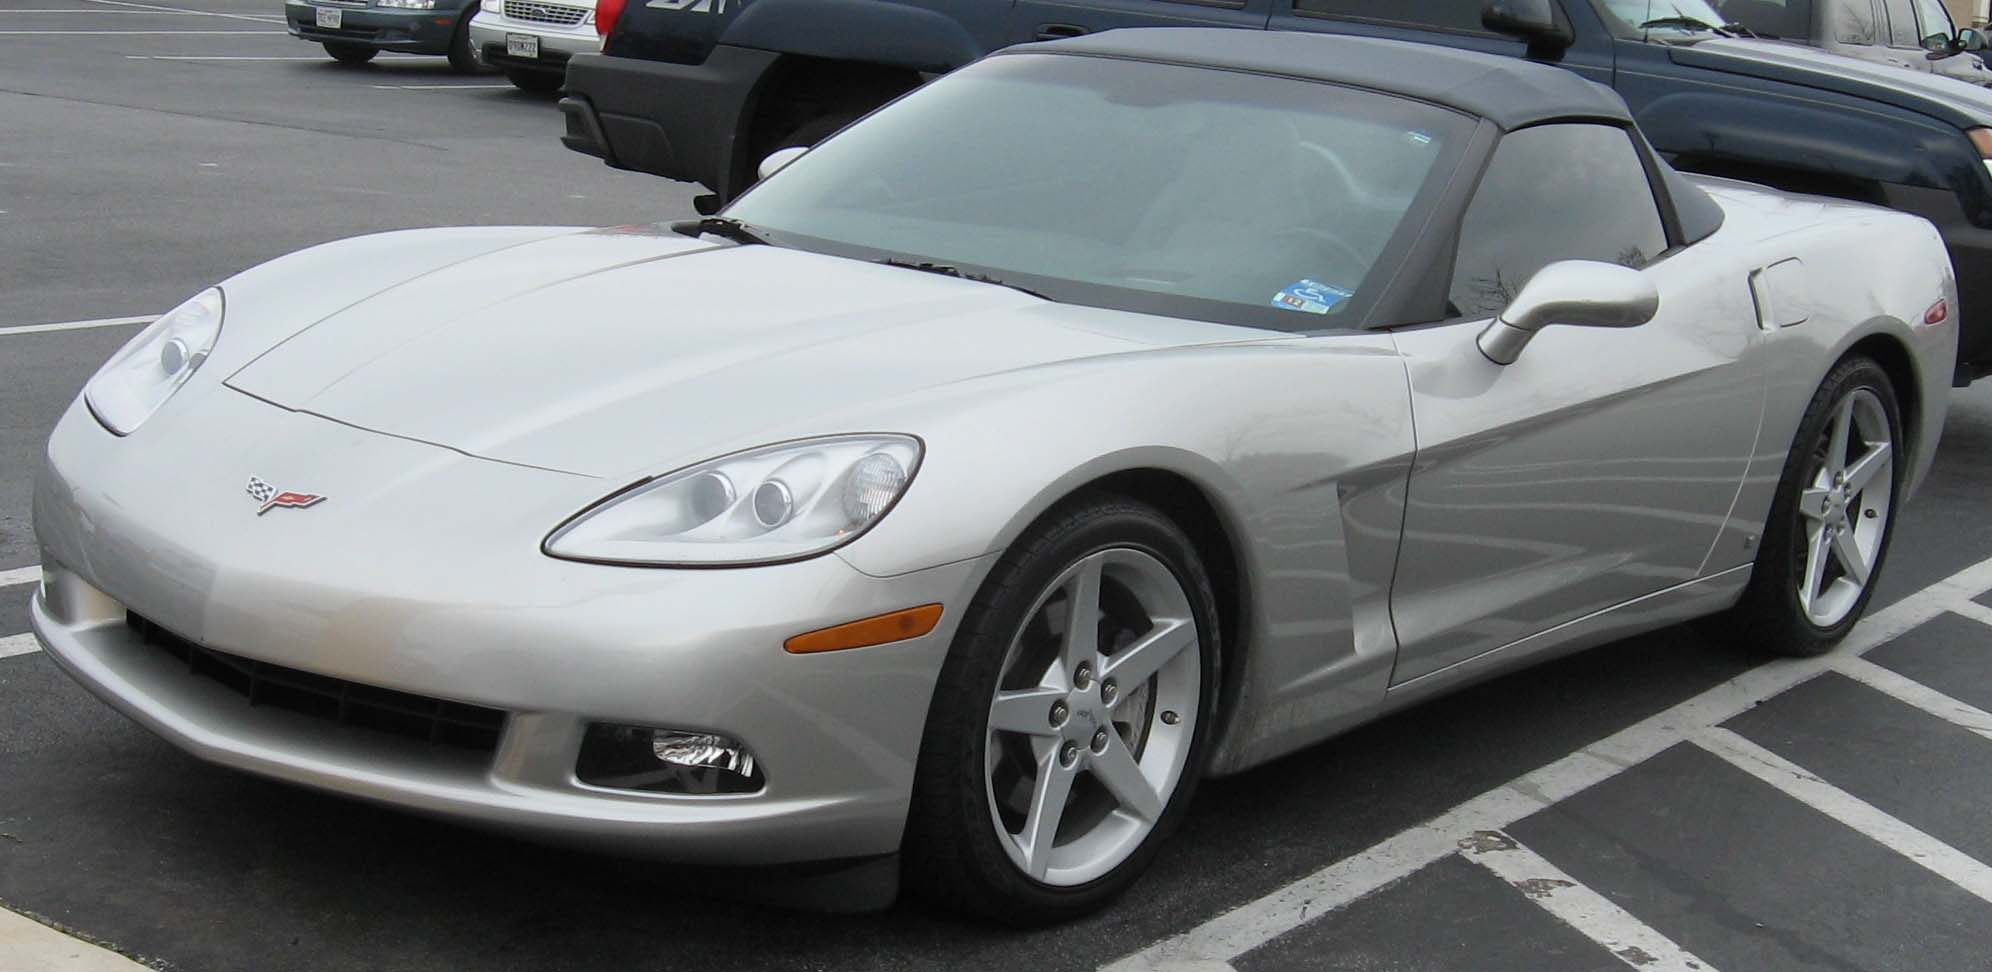 Chevrolet-Corvette-C6-convertible